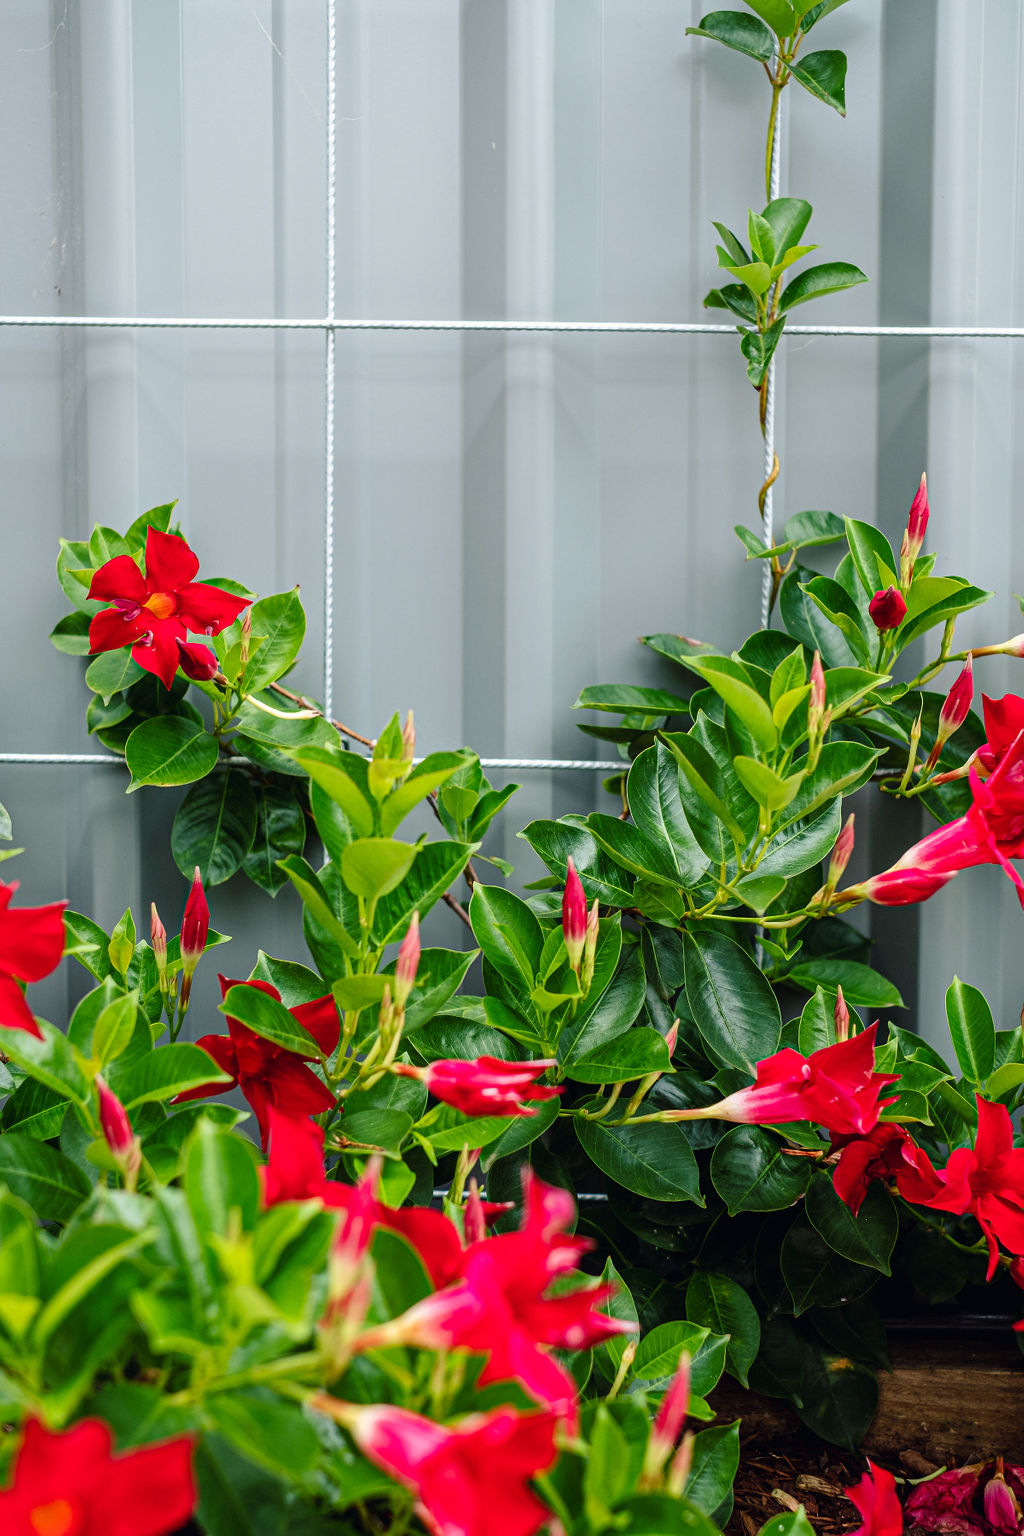 Mandevilla disguises the fence